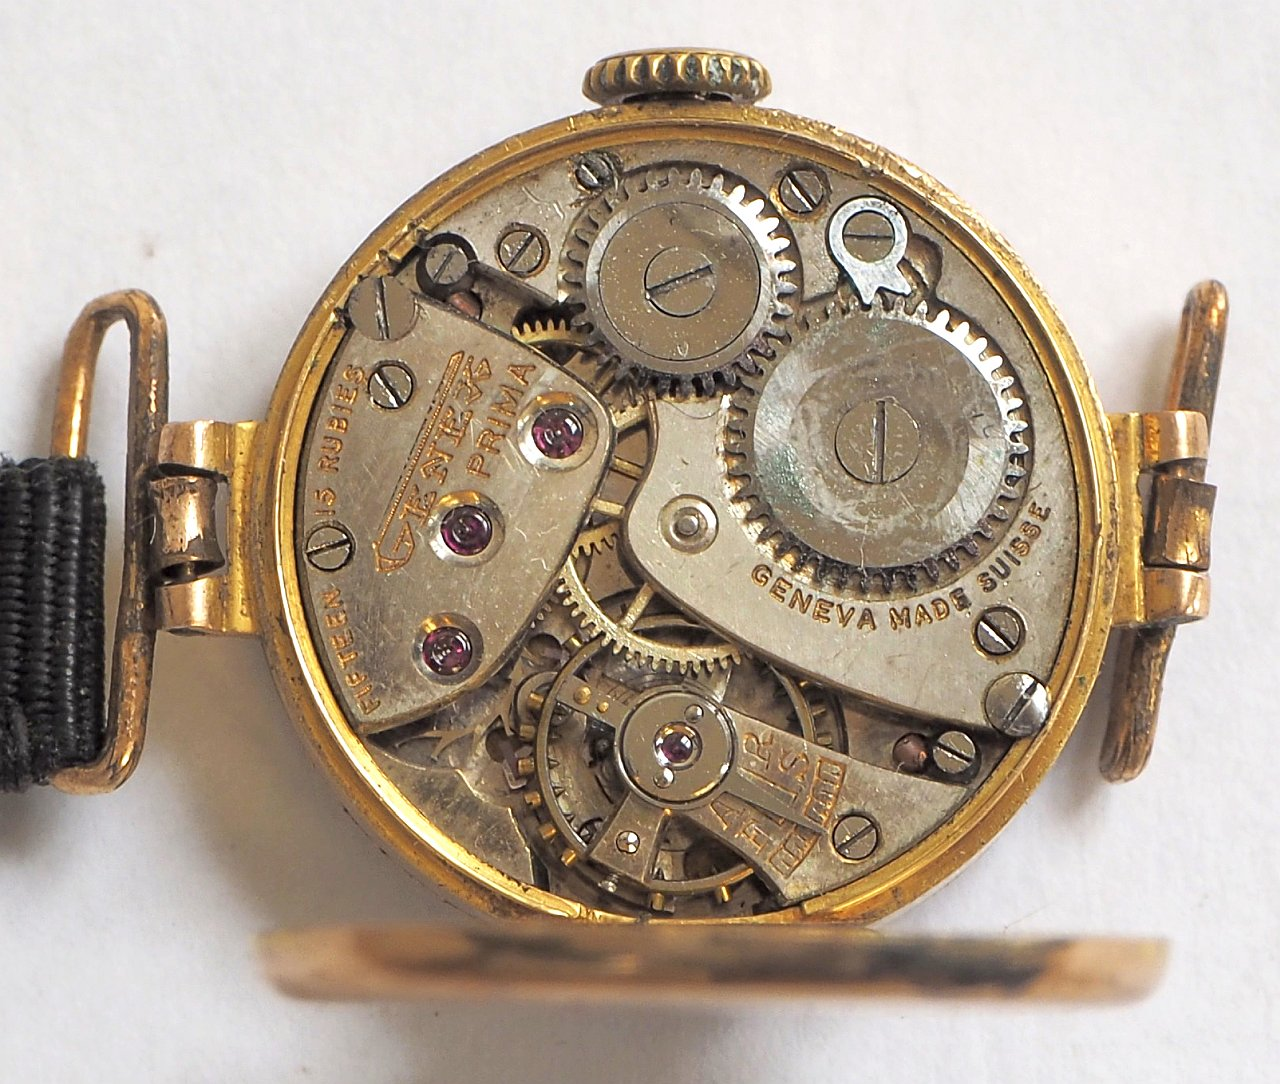 Genex Lady's Wristwatch